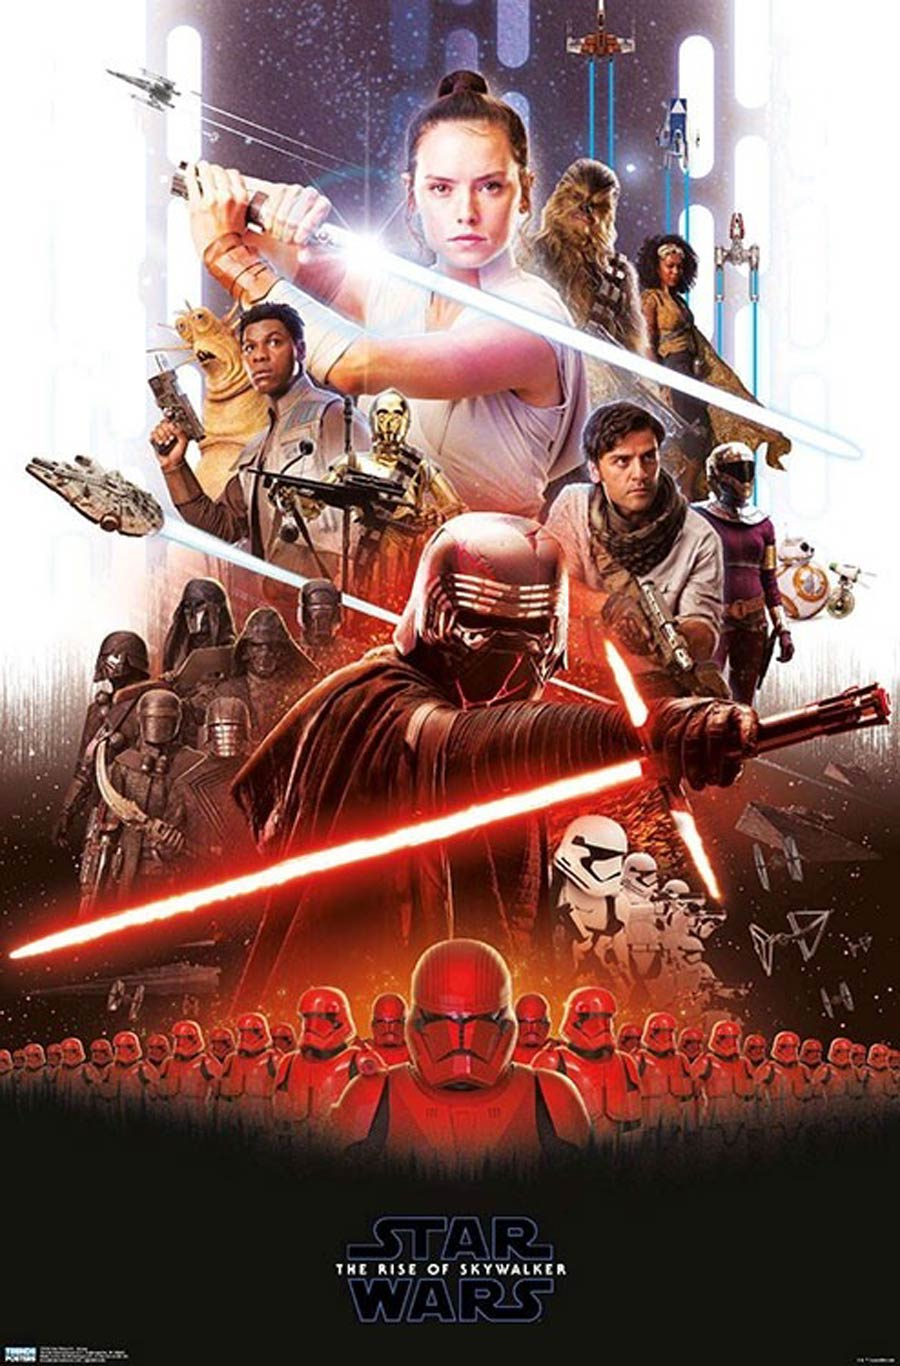 Star Wars The Rise Of Skywalker Group Wall Poster